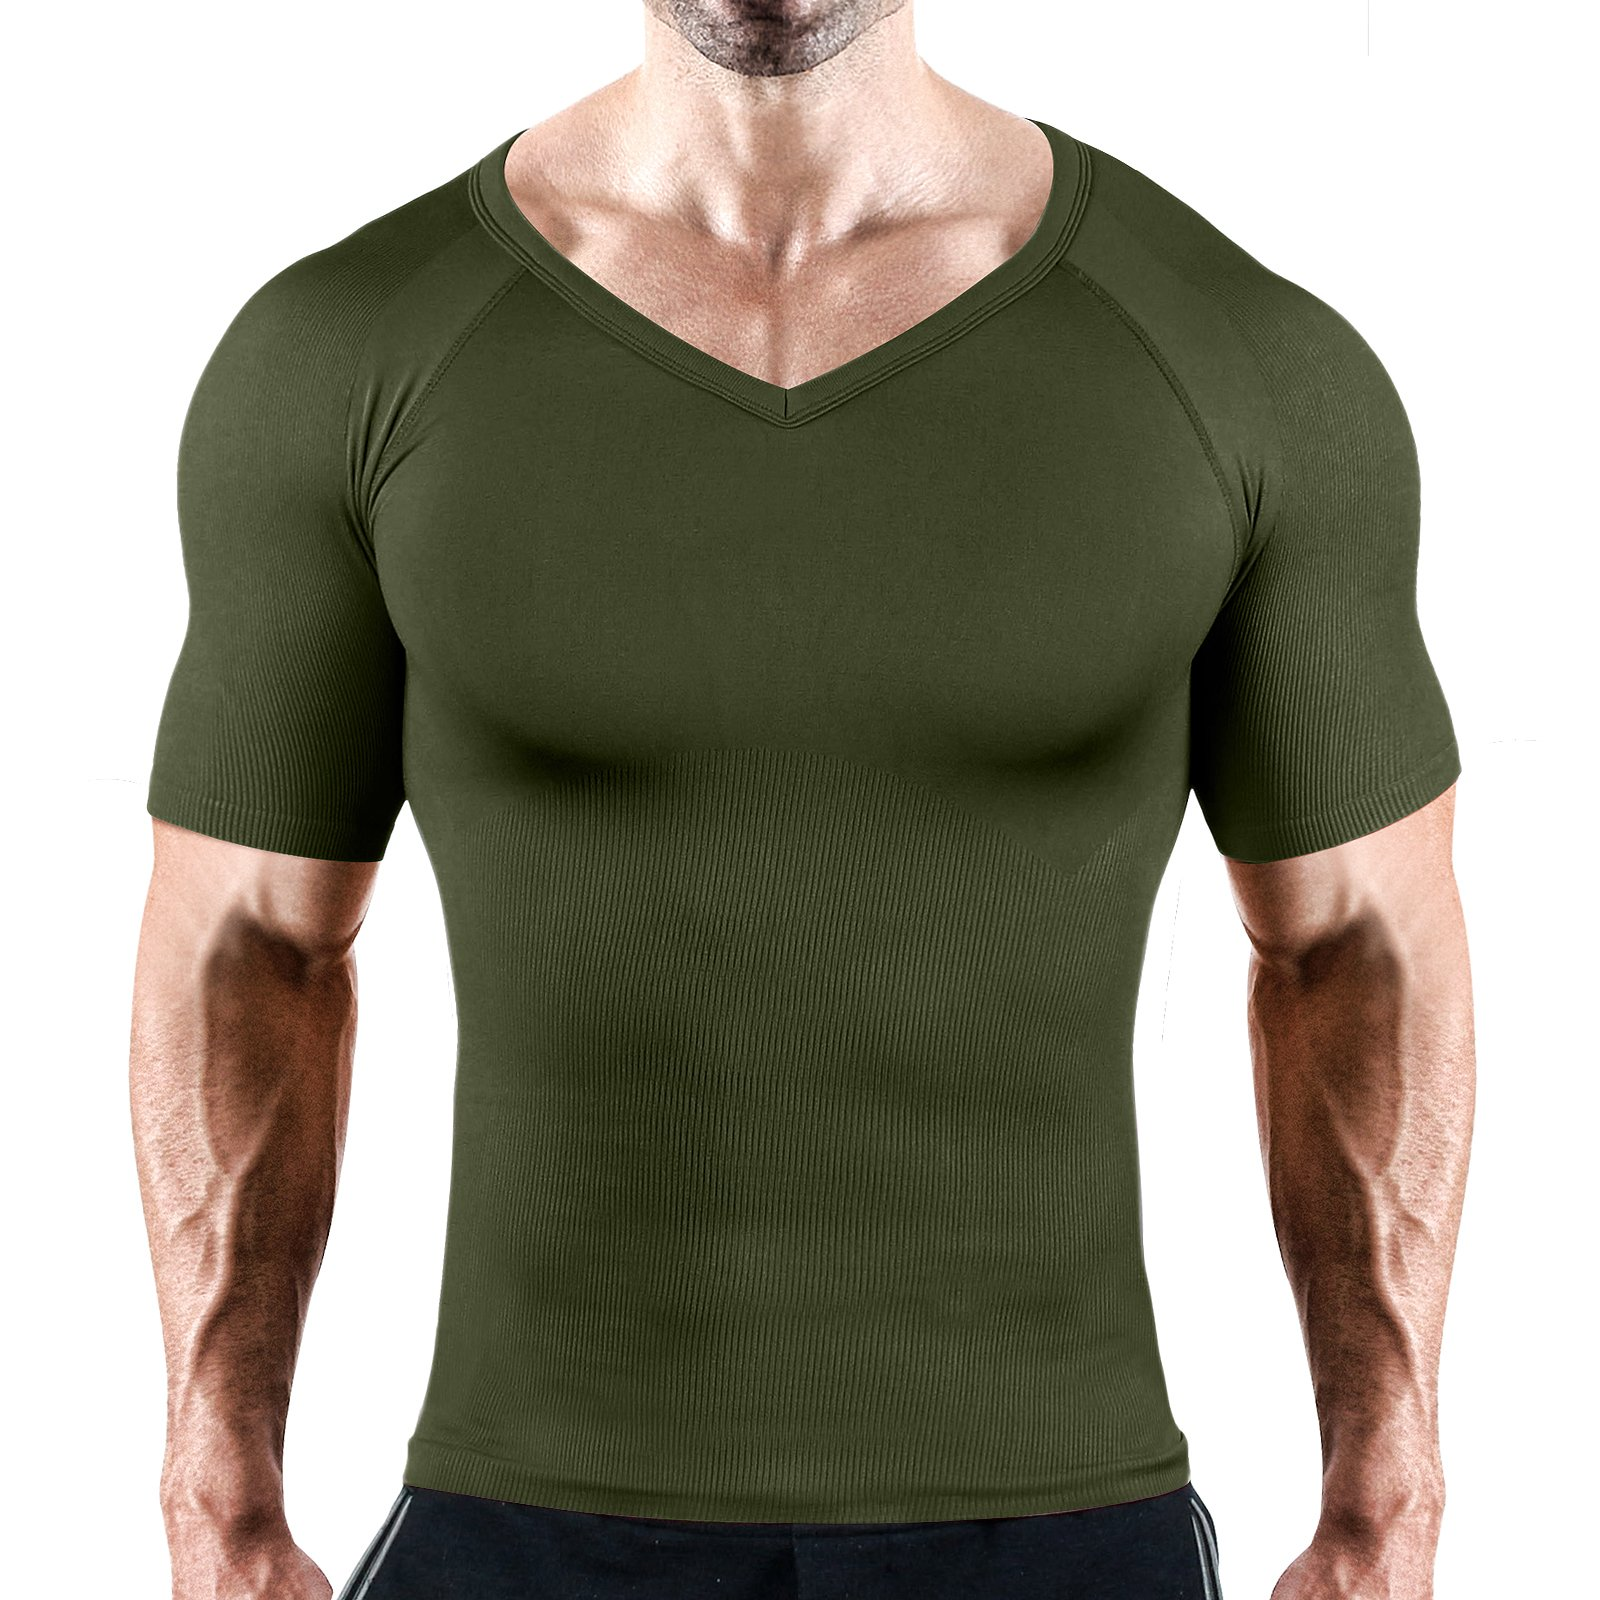 Hoter Mens Slim and Tight Super Soft Compression & Slimming Shaper V-Neck Compression Shirt by HÖTER (Image #1)